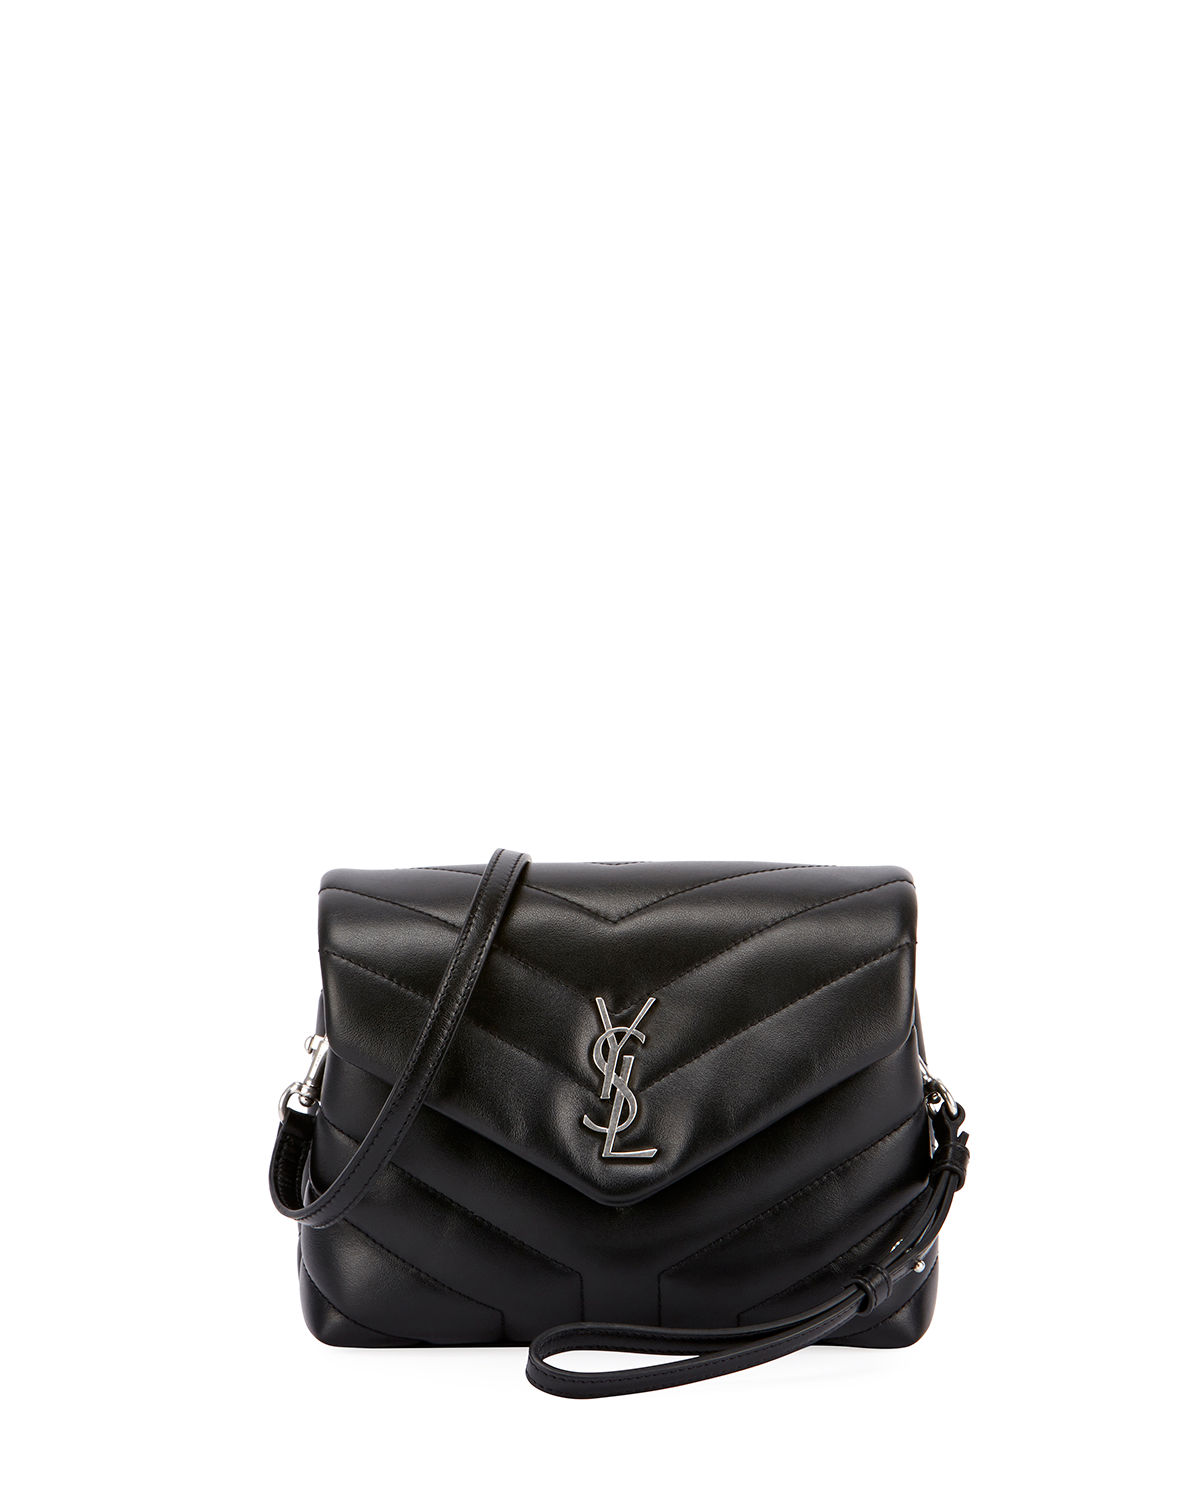 20bef090a9ab Saint LaurentLoulou Monogram YSL Mini V-Flap Calf Leather Crossbody Bag -  Nickel Oxide Hardware